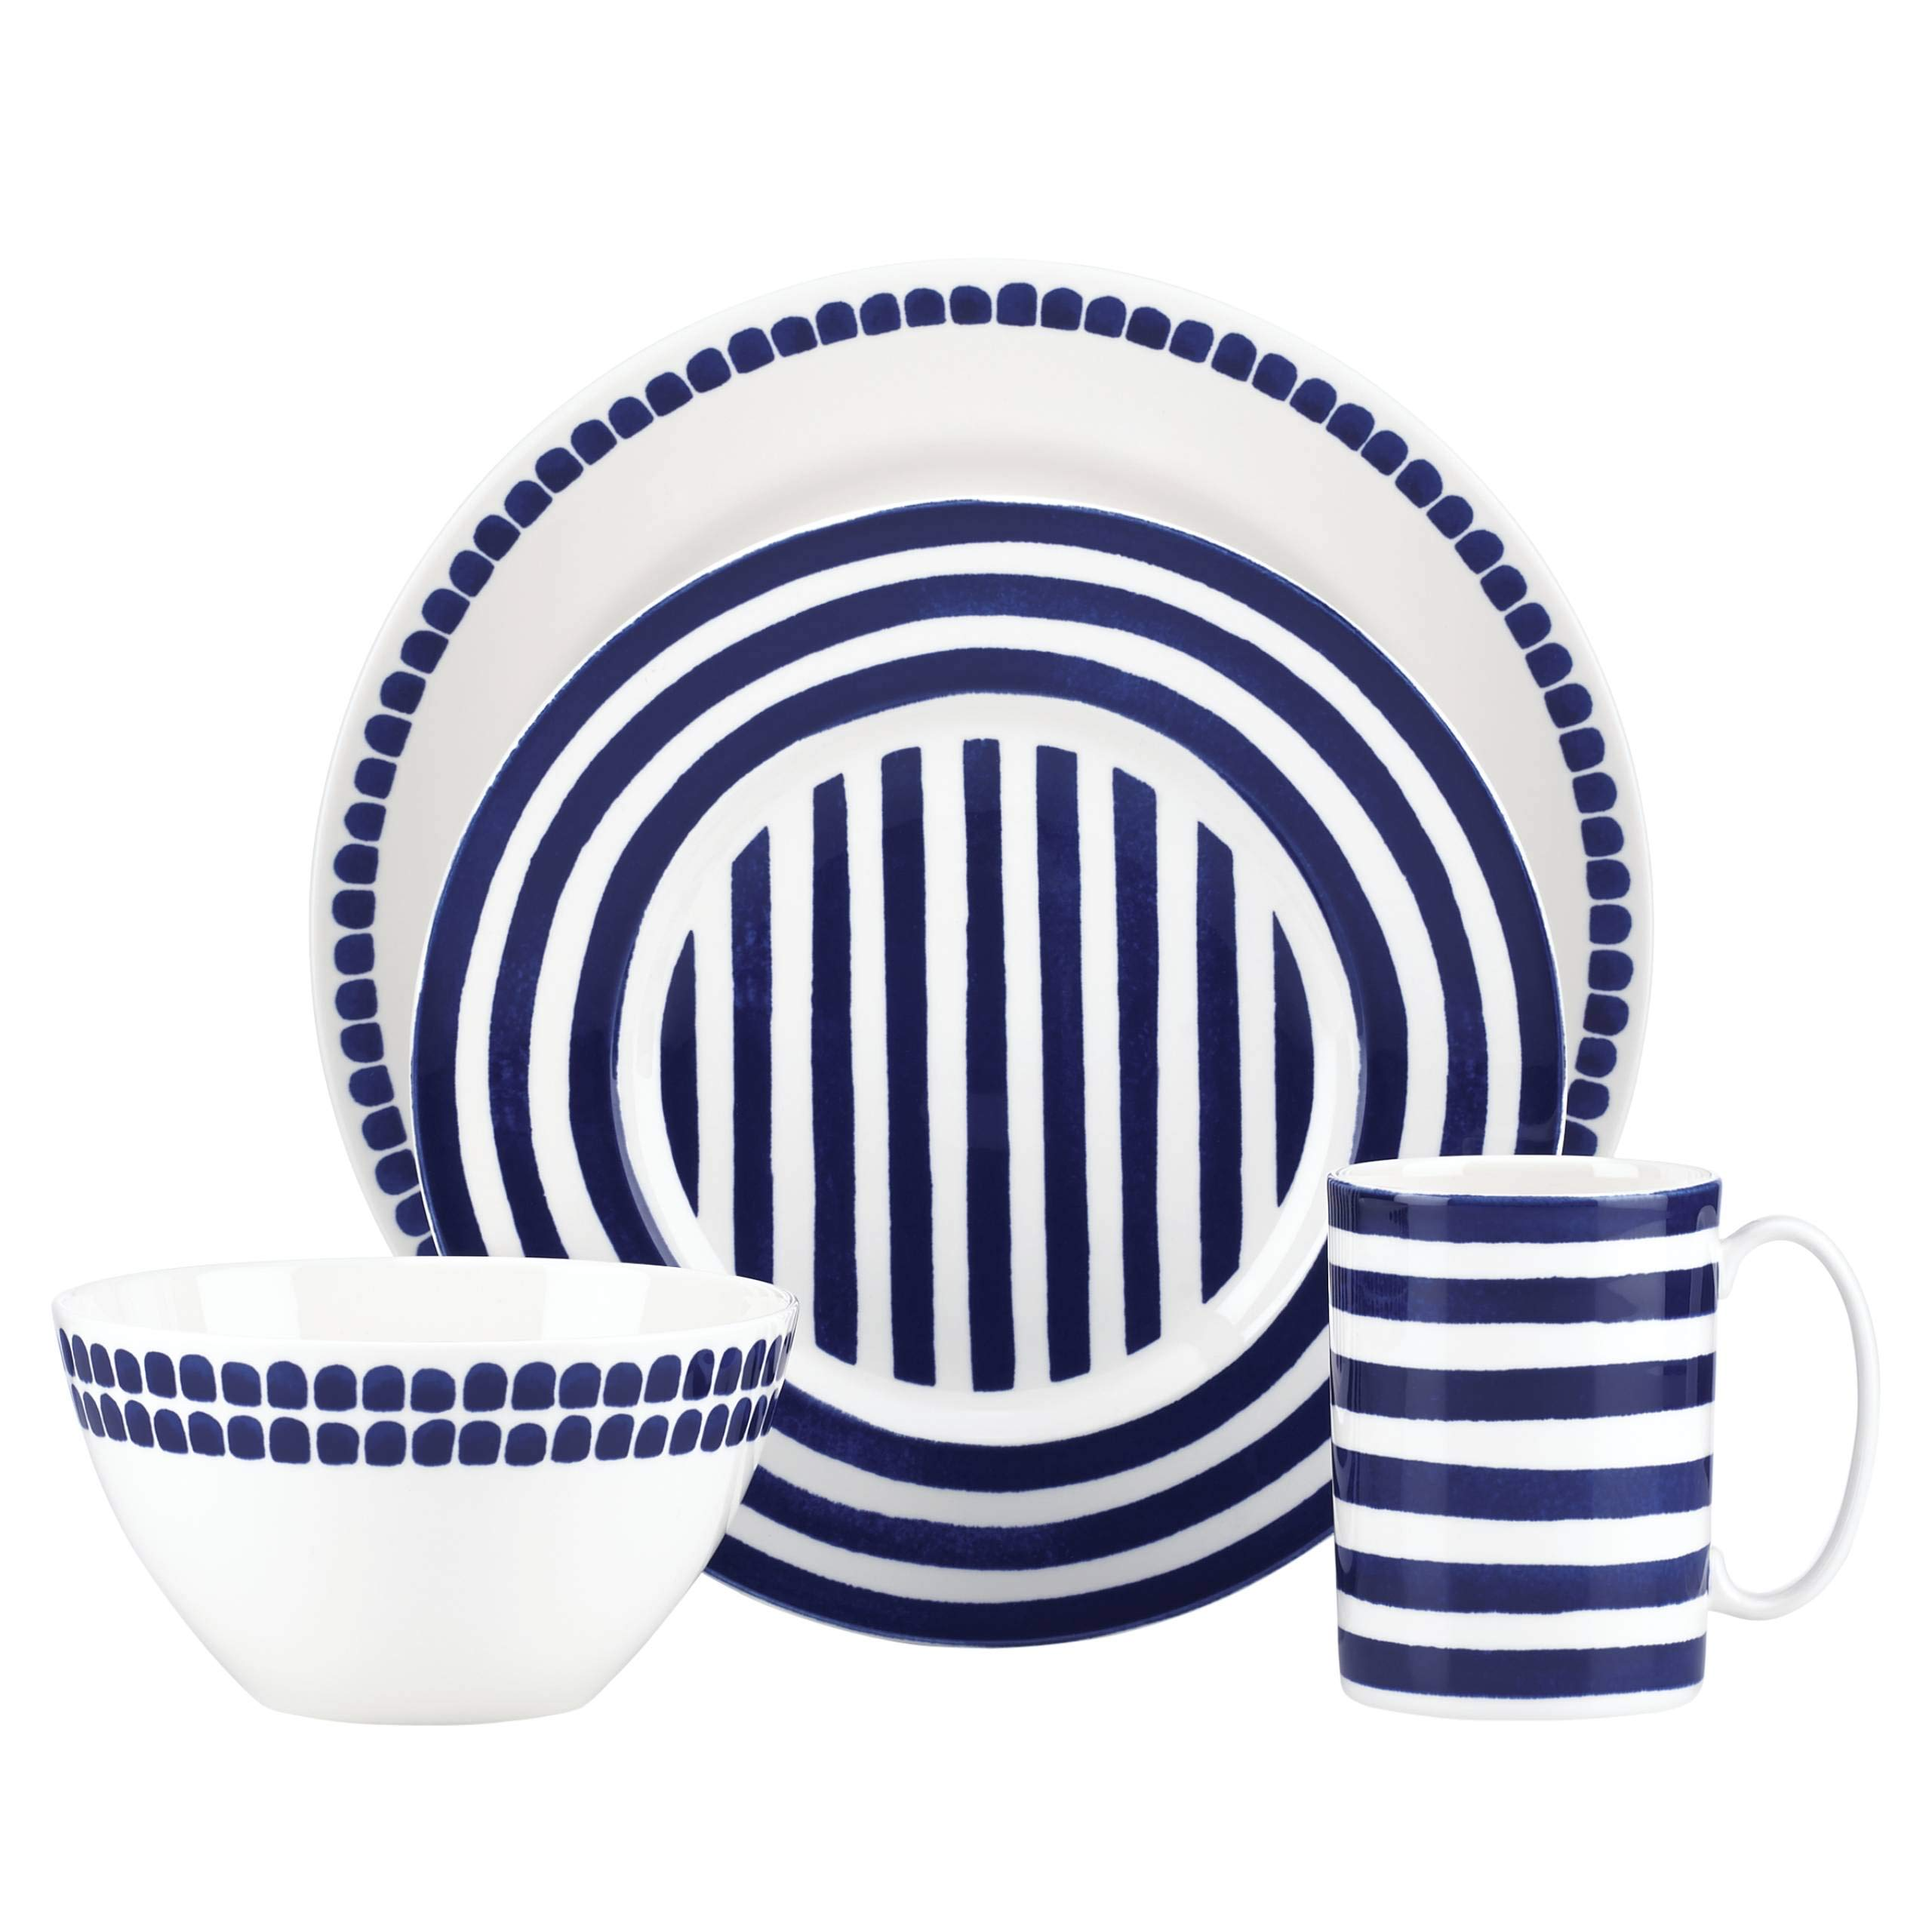 Kate Spade New York 844093 Charlotte Street North 4 Piece Place Setting by Kate Spade New York